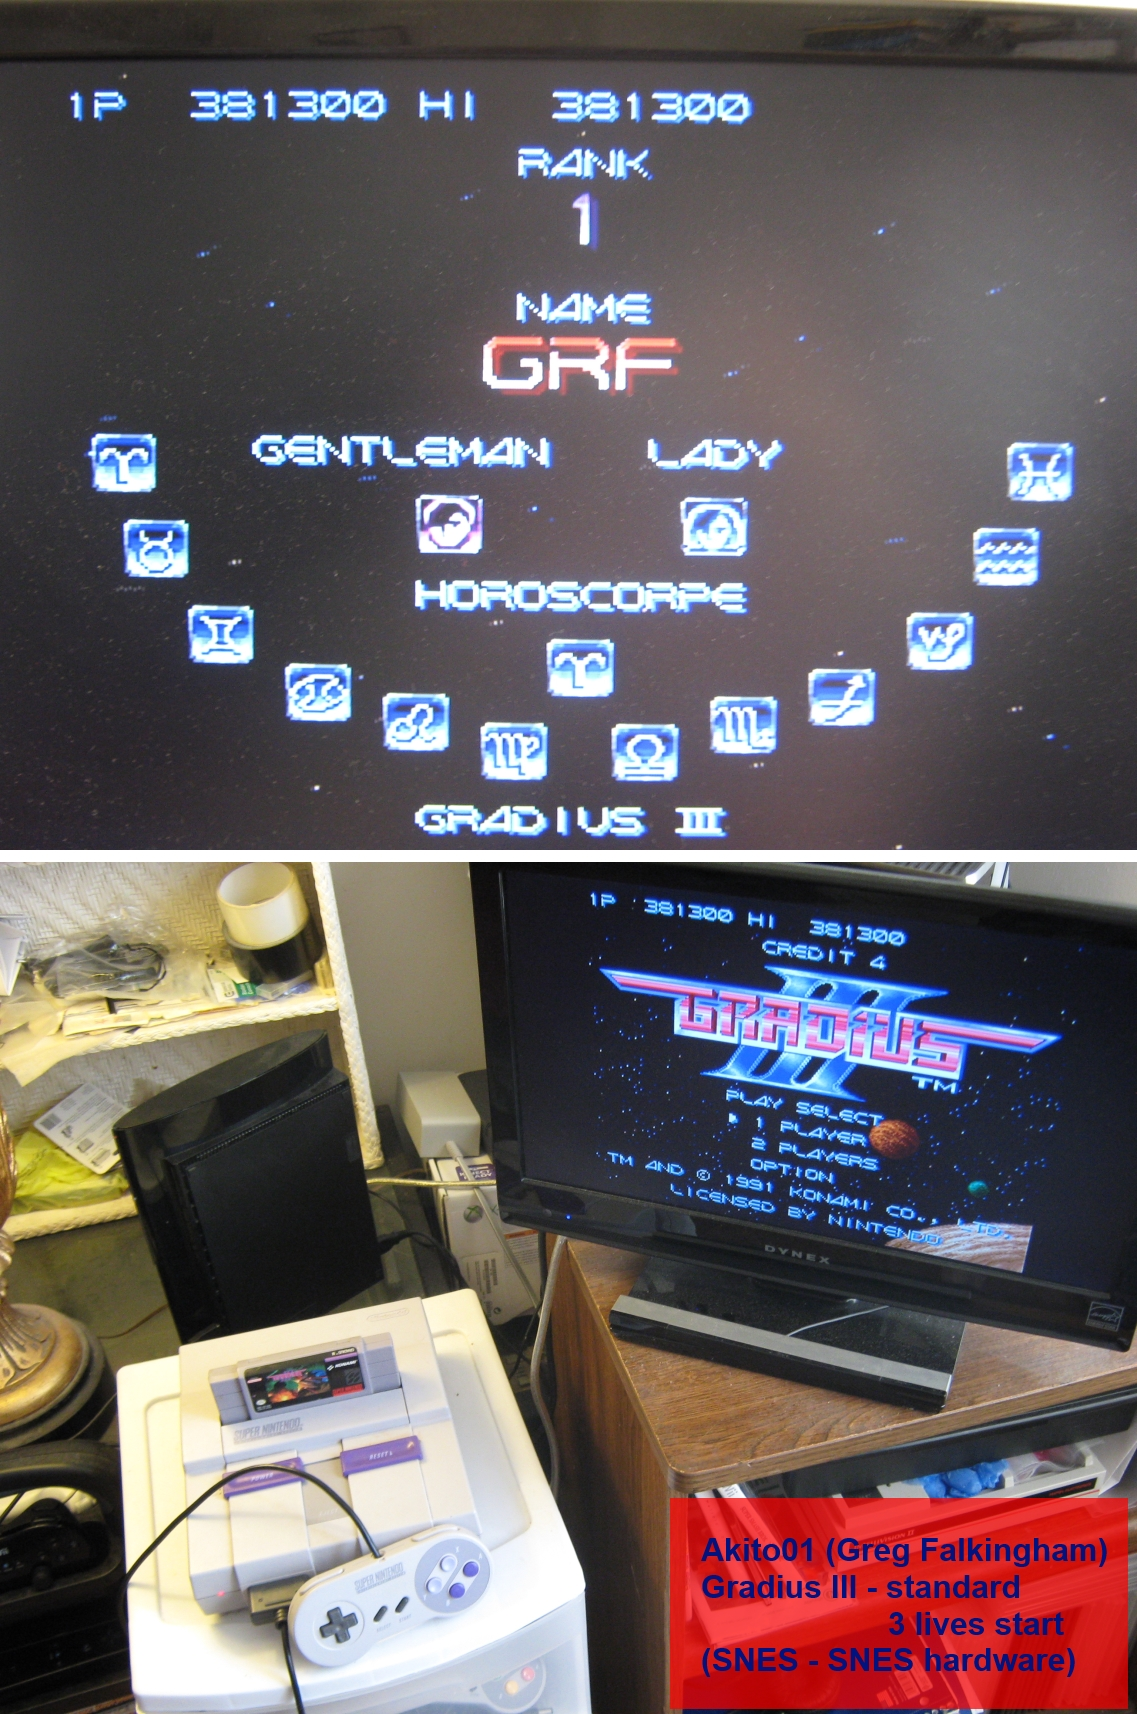 Gradius III 381,300 points